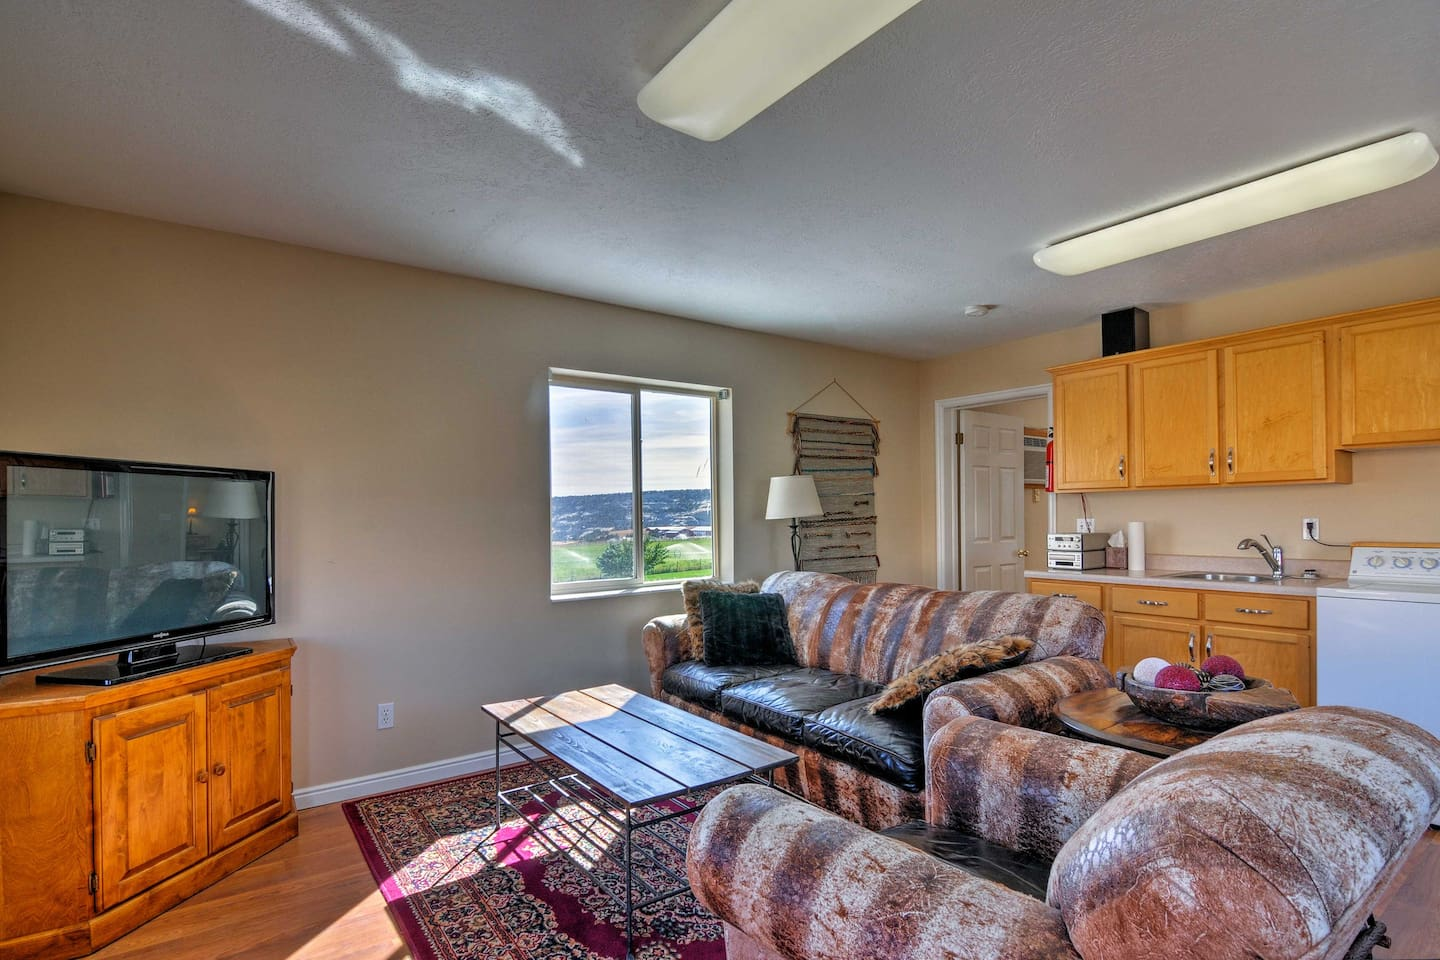 This renovated barn apartment sleeps 2 guests on a peaceful, operating ranch!